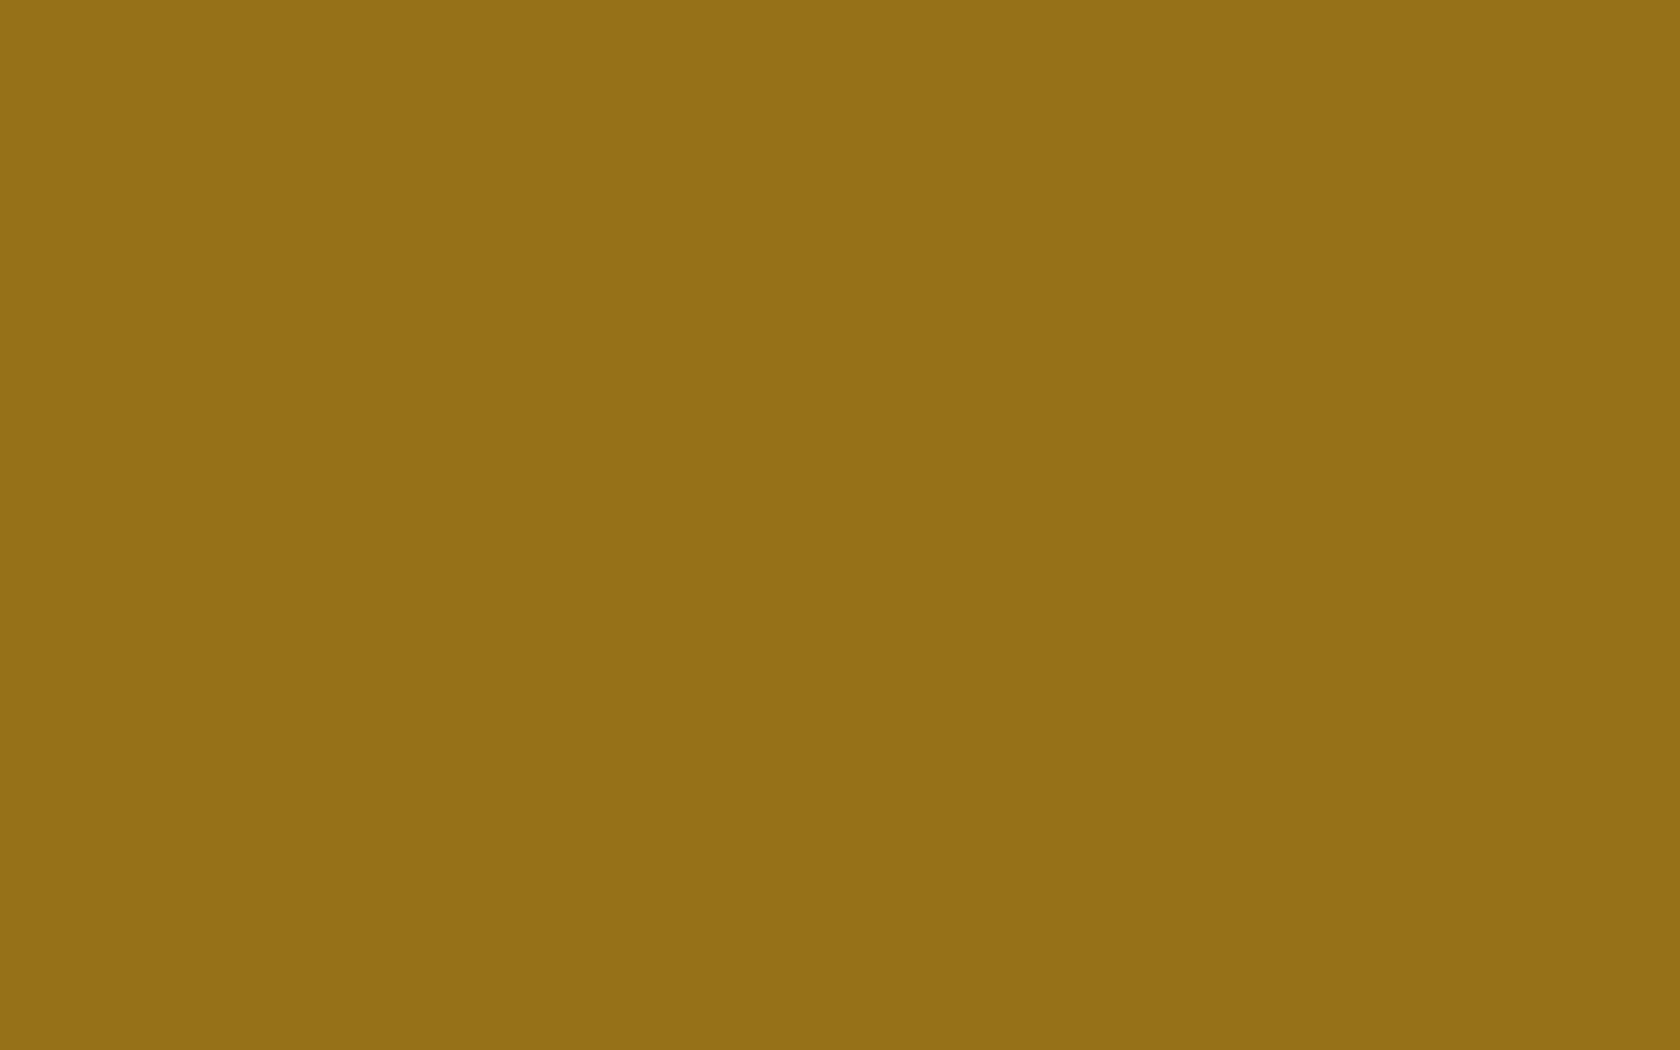 1680x1050 Drab Solid Color Background